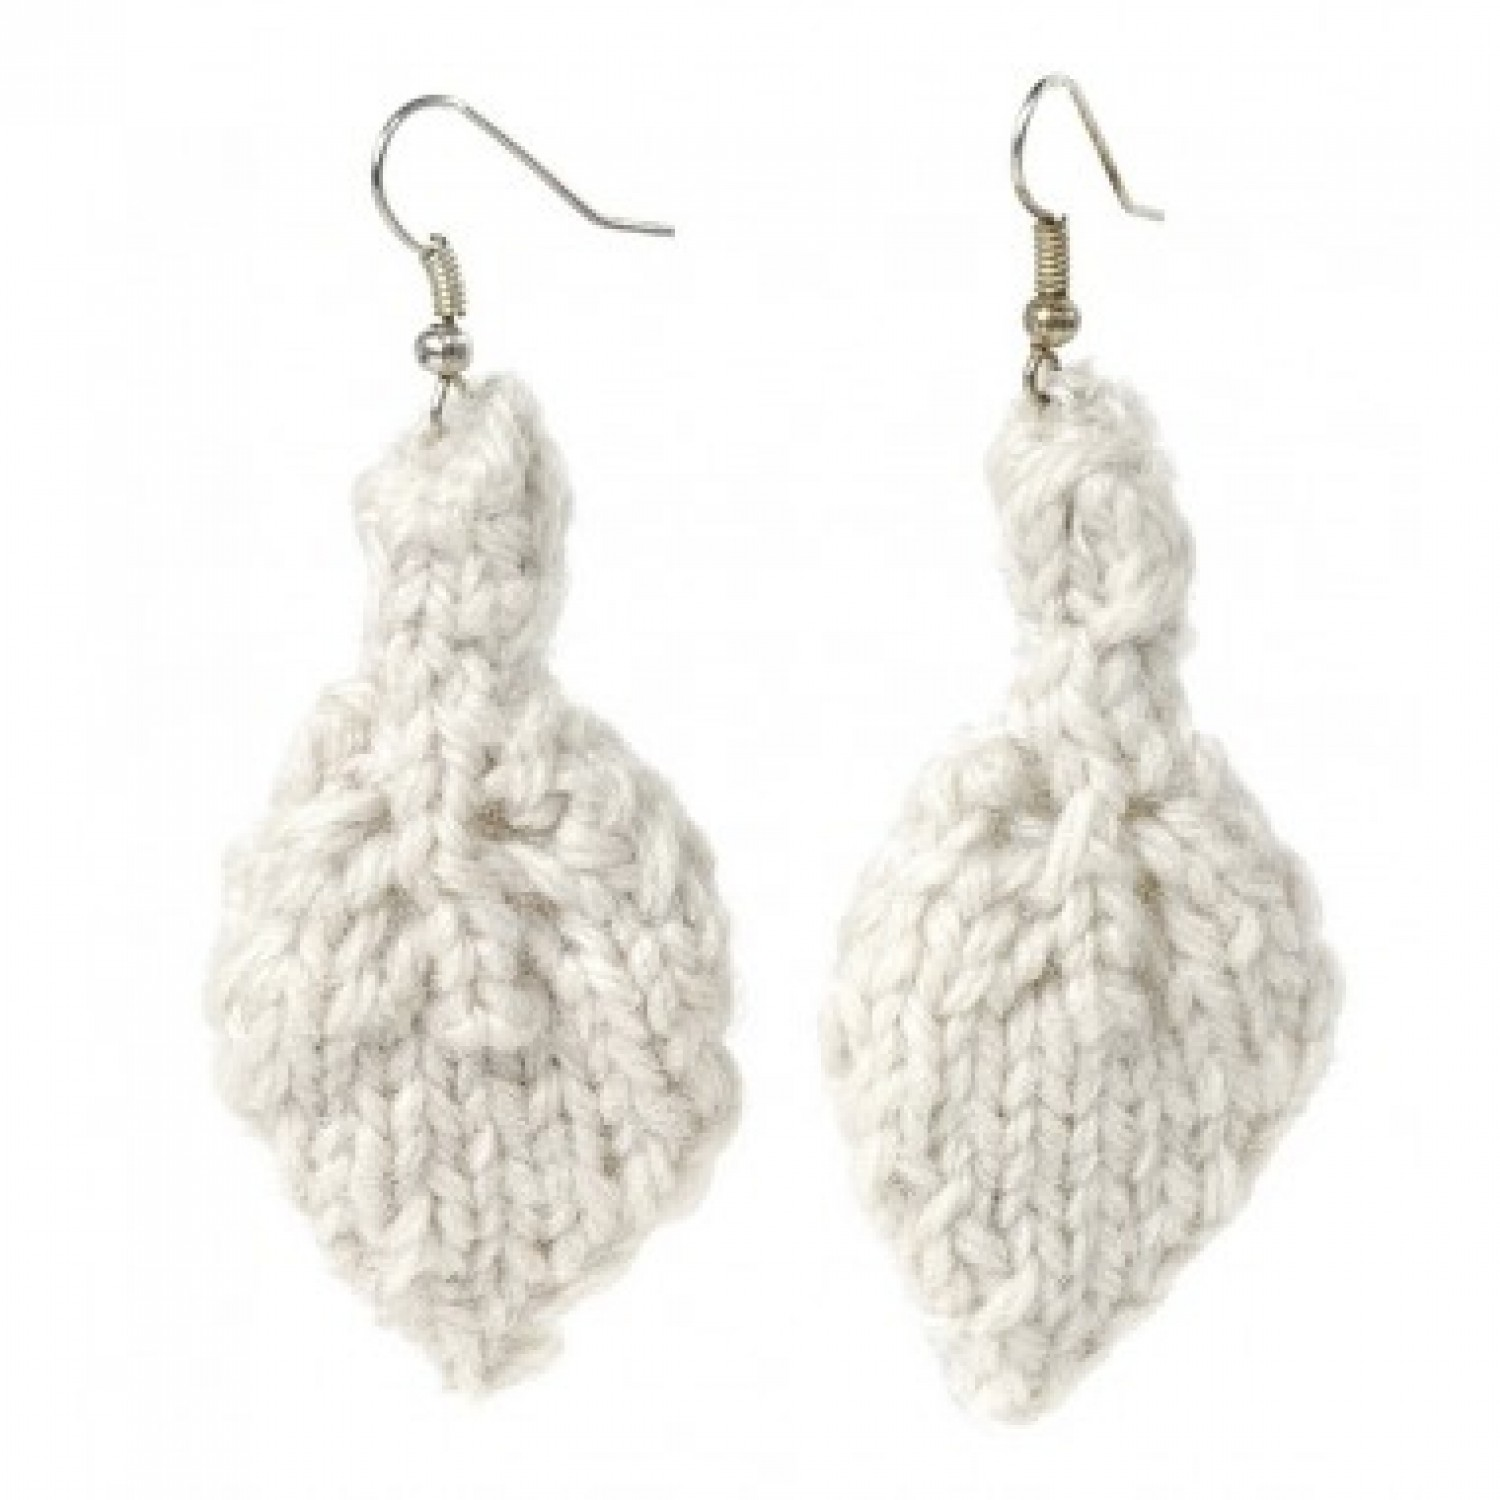 Leaf | Earrings made of white wool